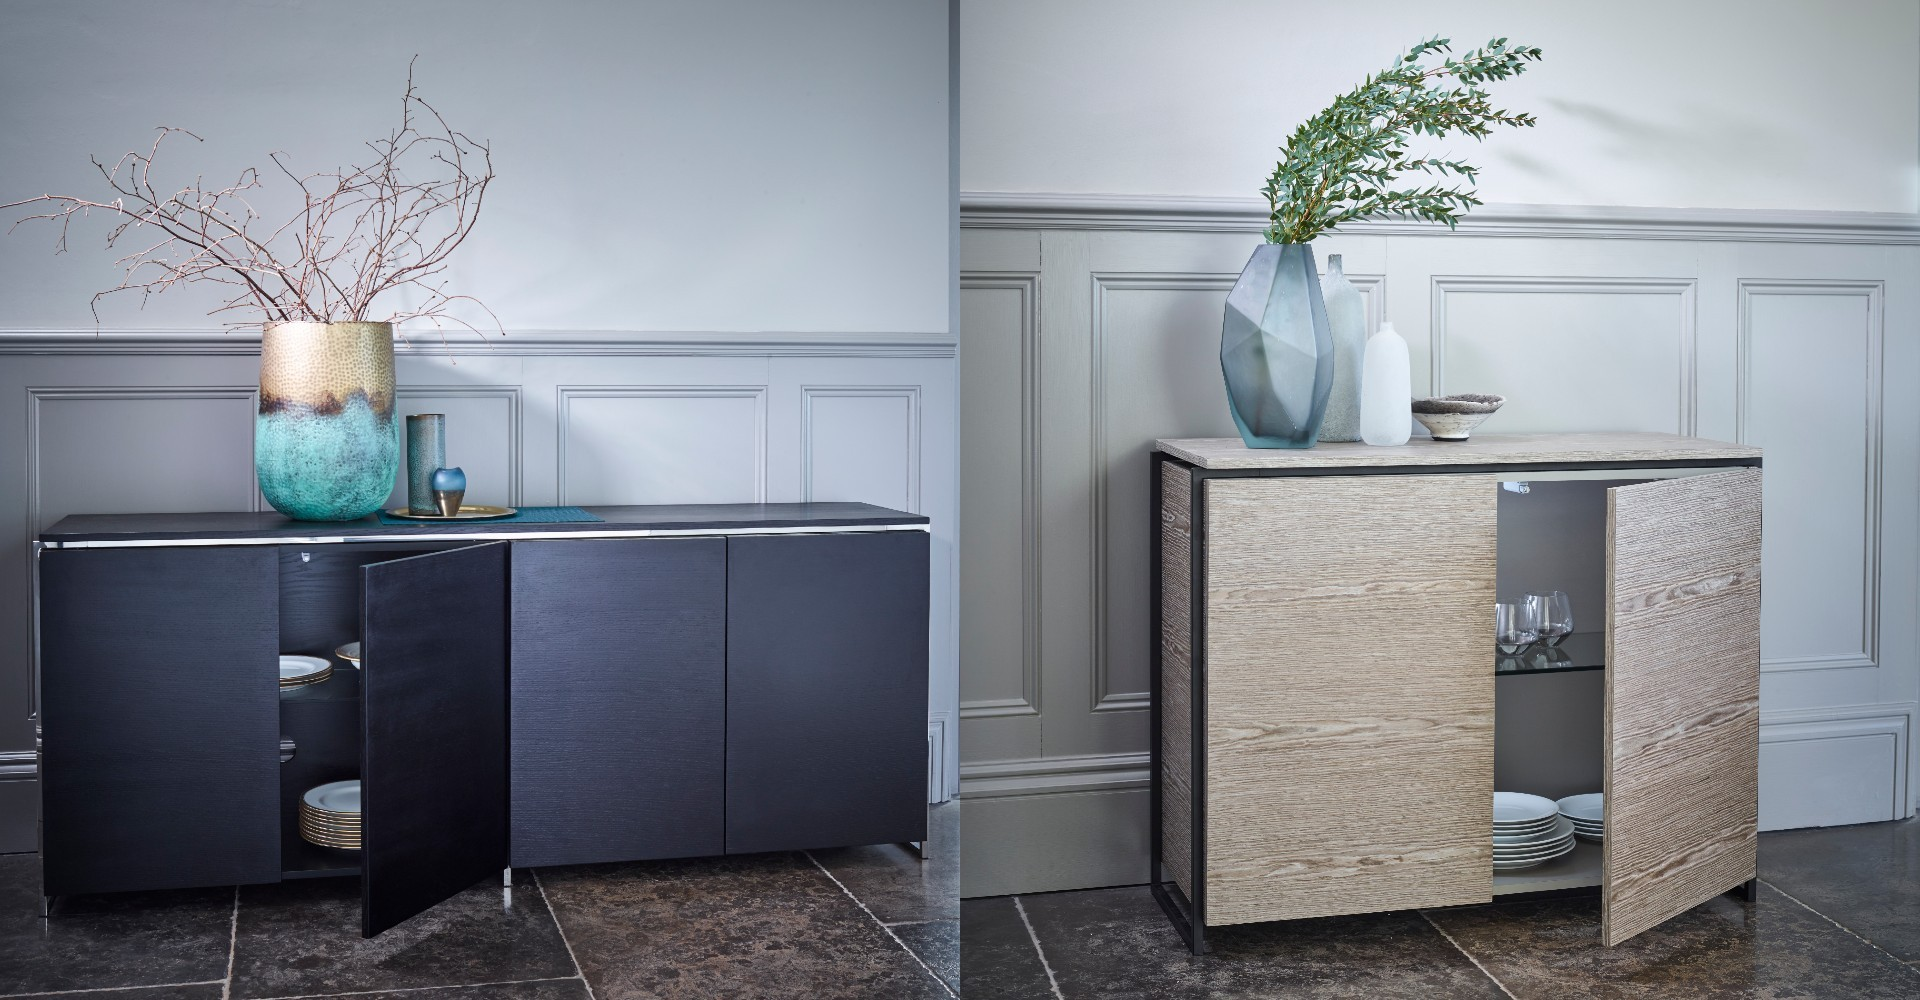 Federico Four Door Sideboard And Two Door Sideboard by Gillmore © GillmoreSPACE Ltd